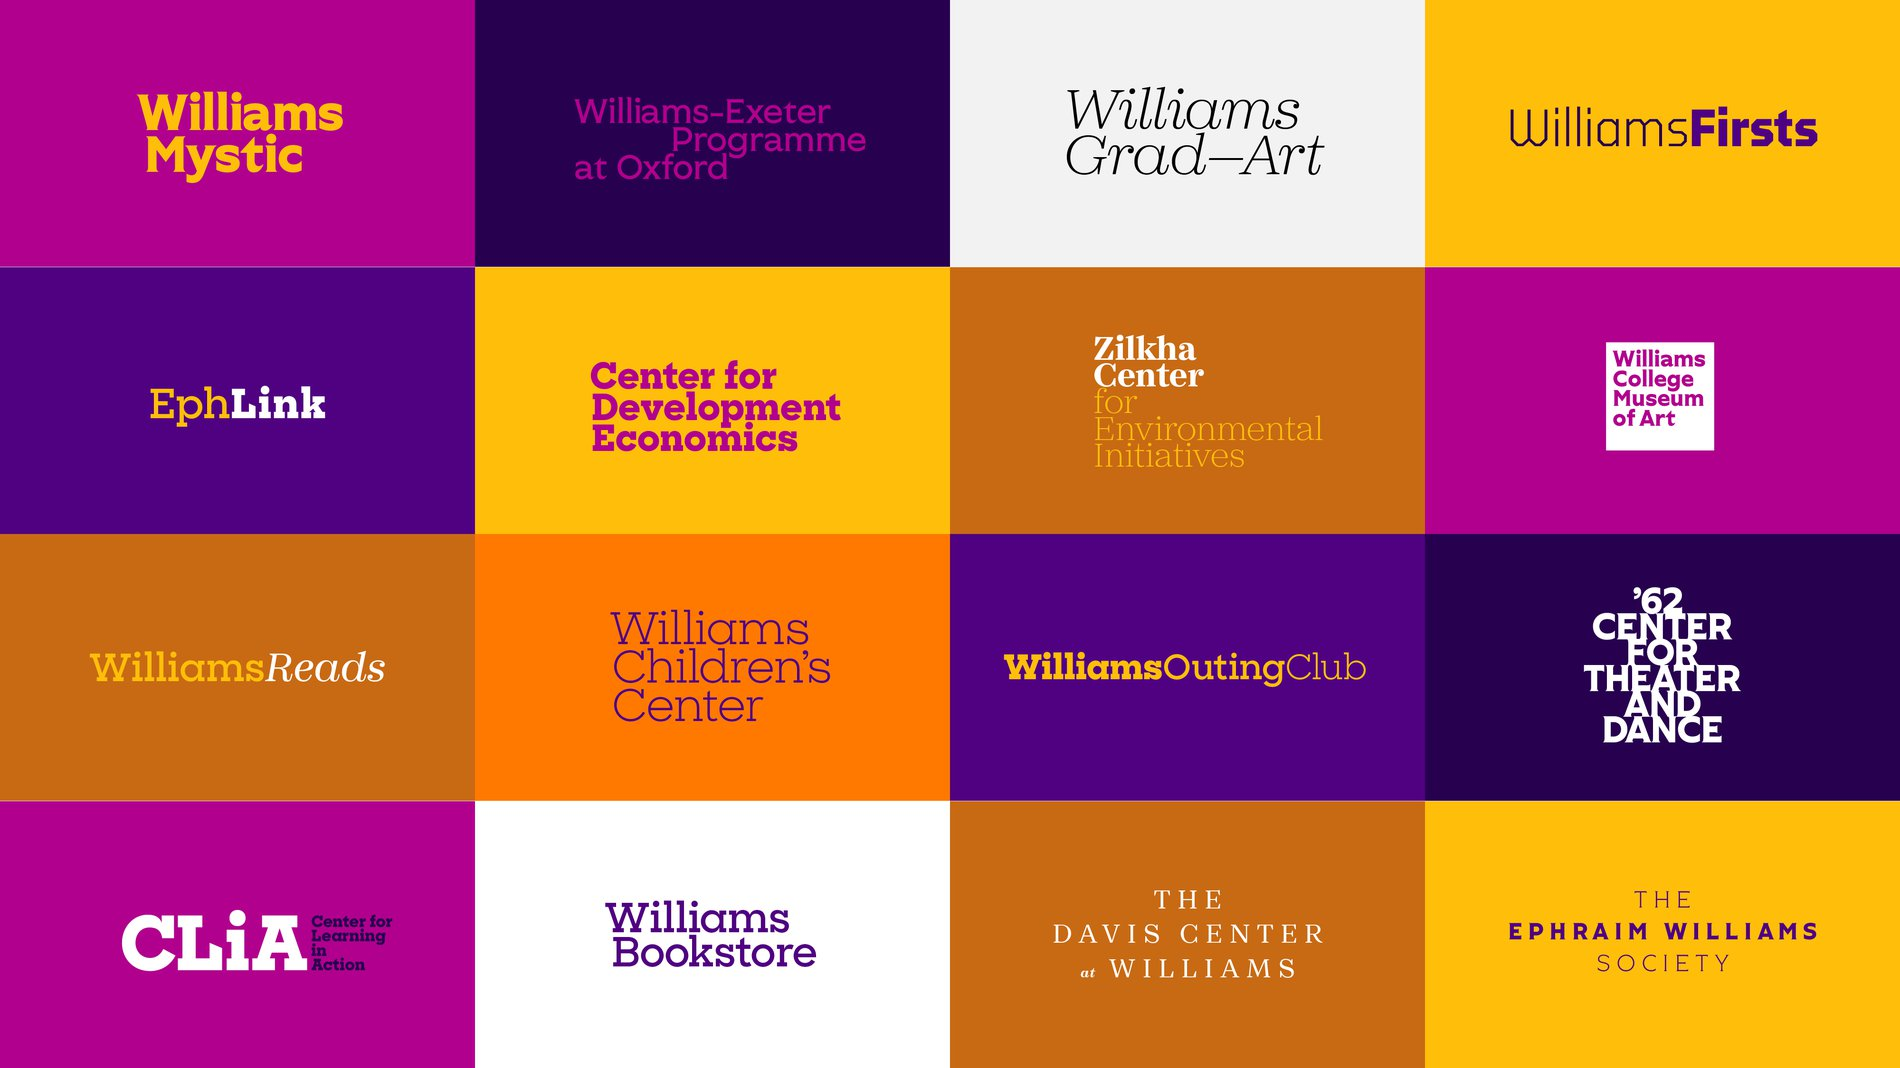 12-williams_guidelines_rectangle_1080px19.jpg